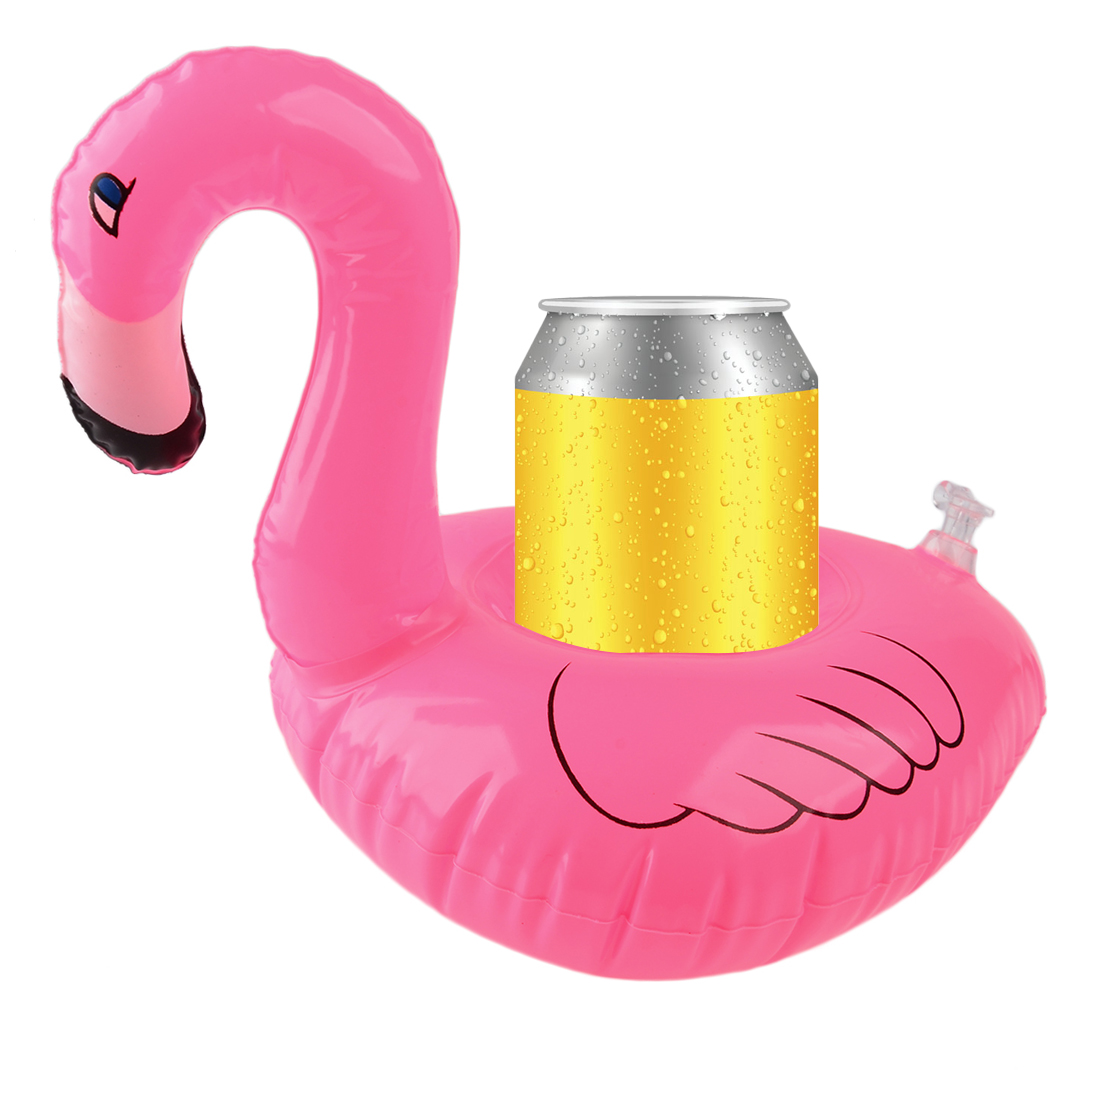 1 Pcs Mini Flamingo Inflatable Water Floating Cell Phone Drink Can Coke Cup Holder Stand Station Swimming Bath Pool Toy(China (Mainland))